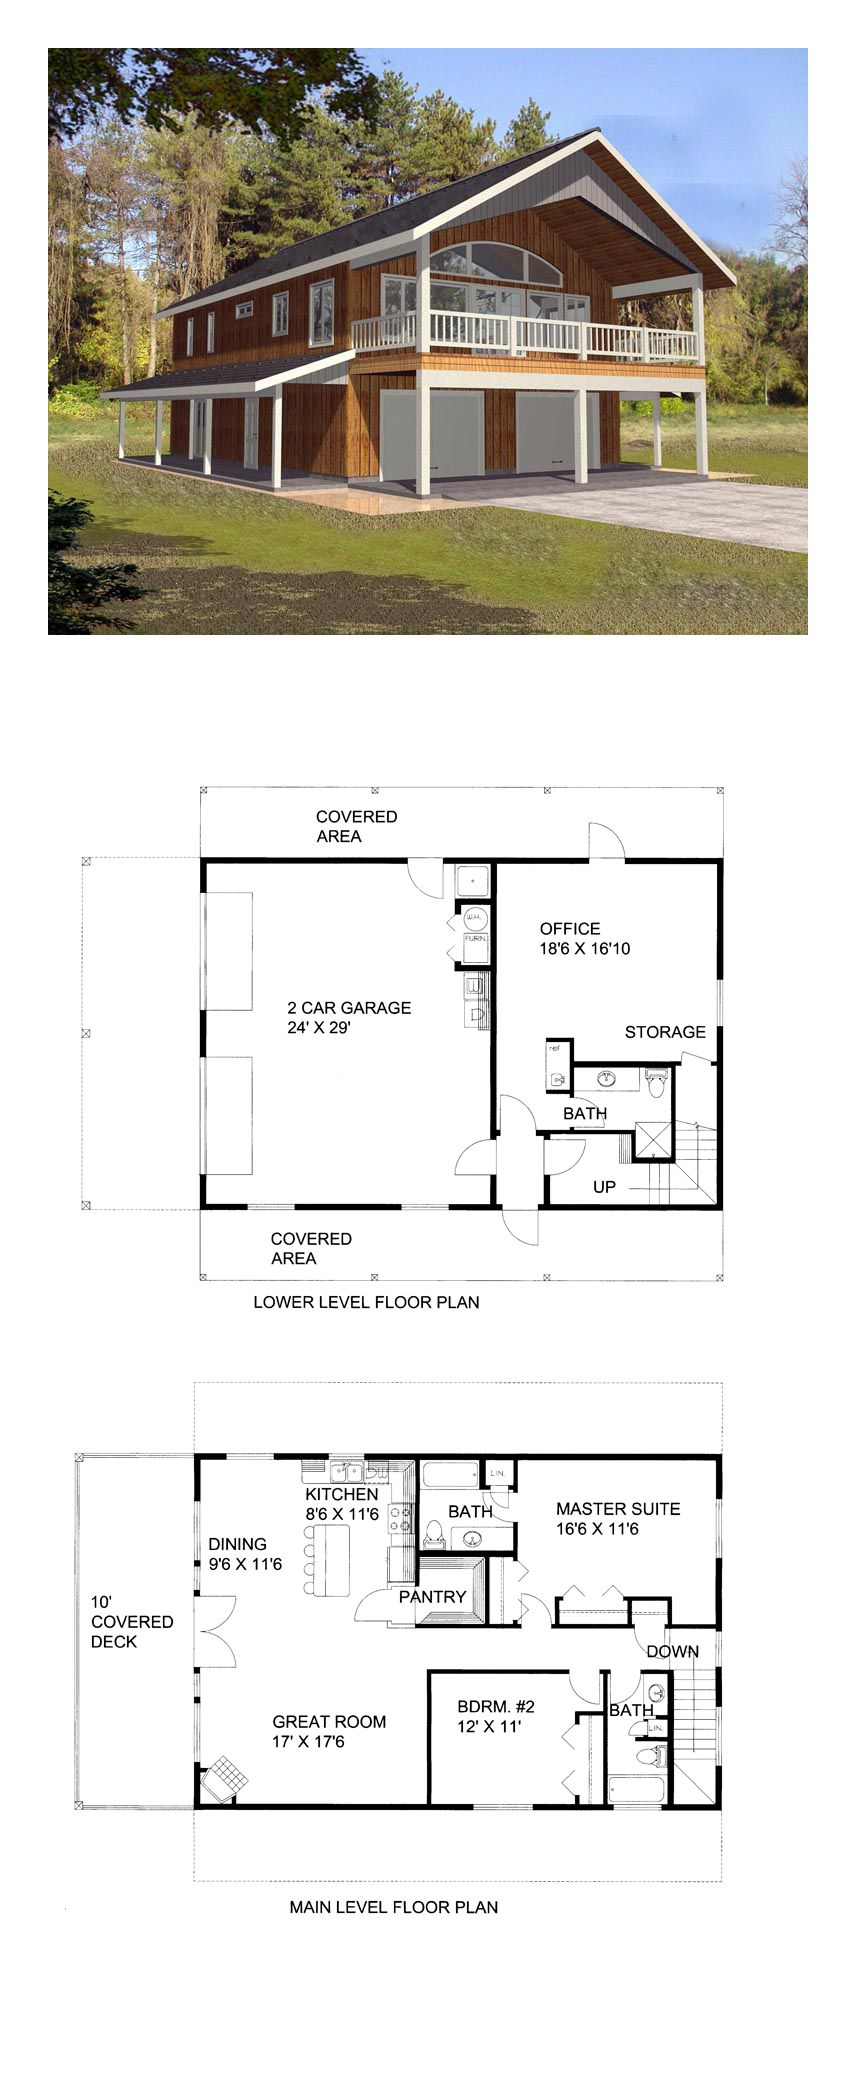 Garage apartment plan 85372 total living area 1901 sq for Two bedroom garage apartment plans